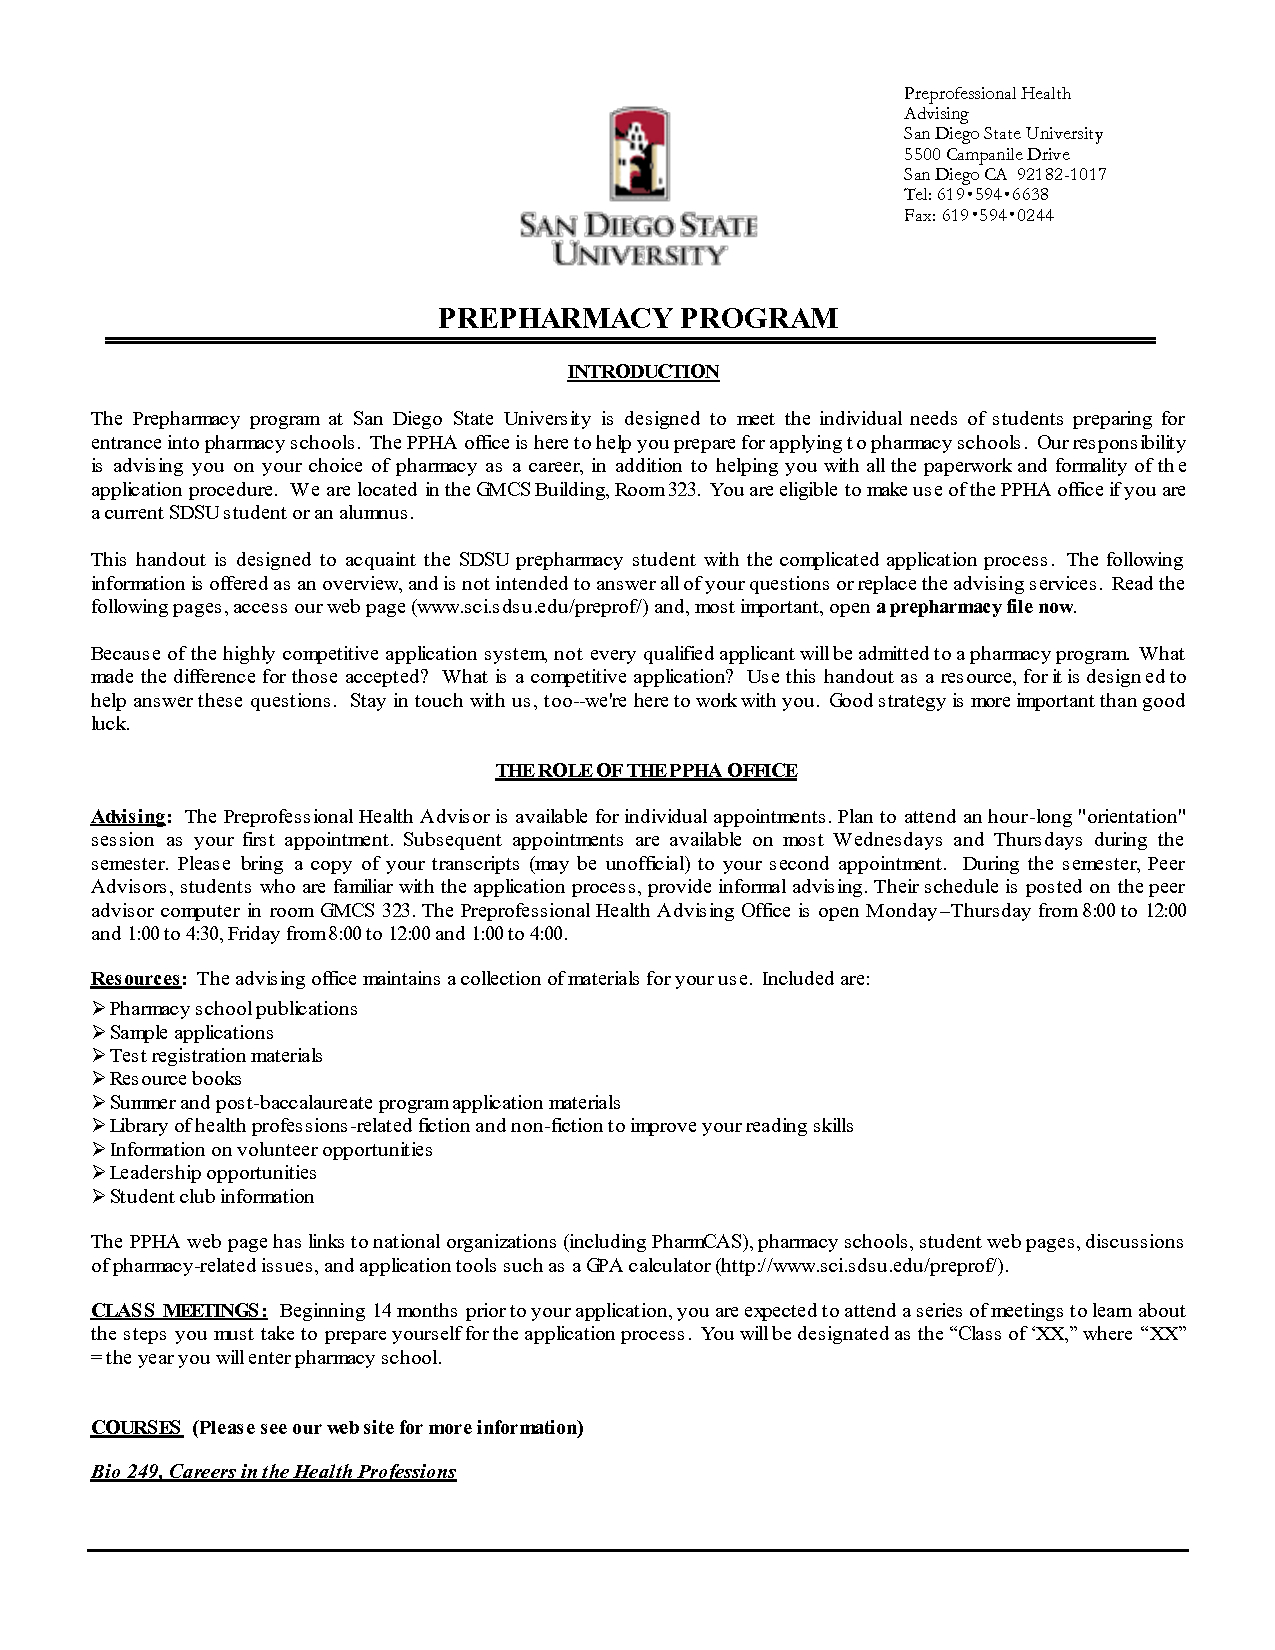 Resume Template for Letter Of Recommendation - Pharmacy School Essay Pharmacy School Essay Ideas for Othello